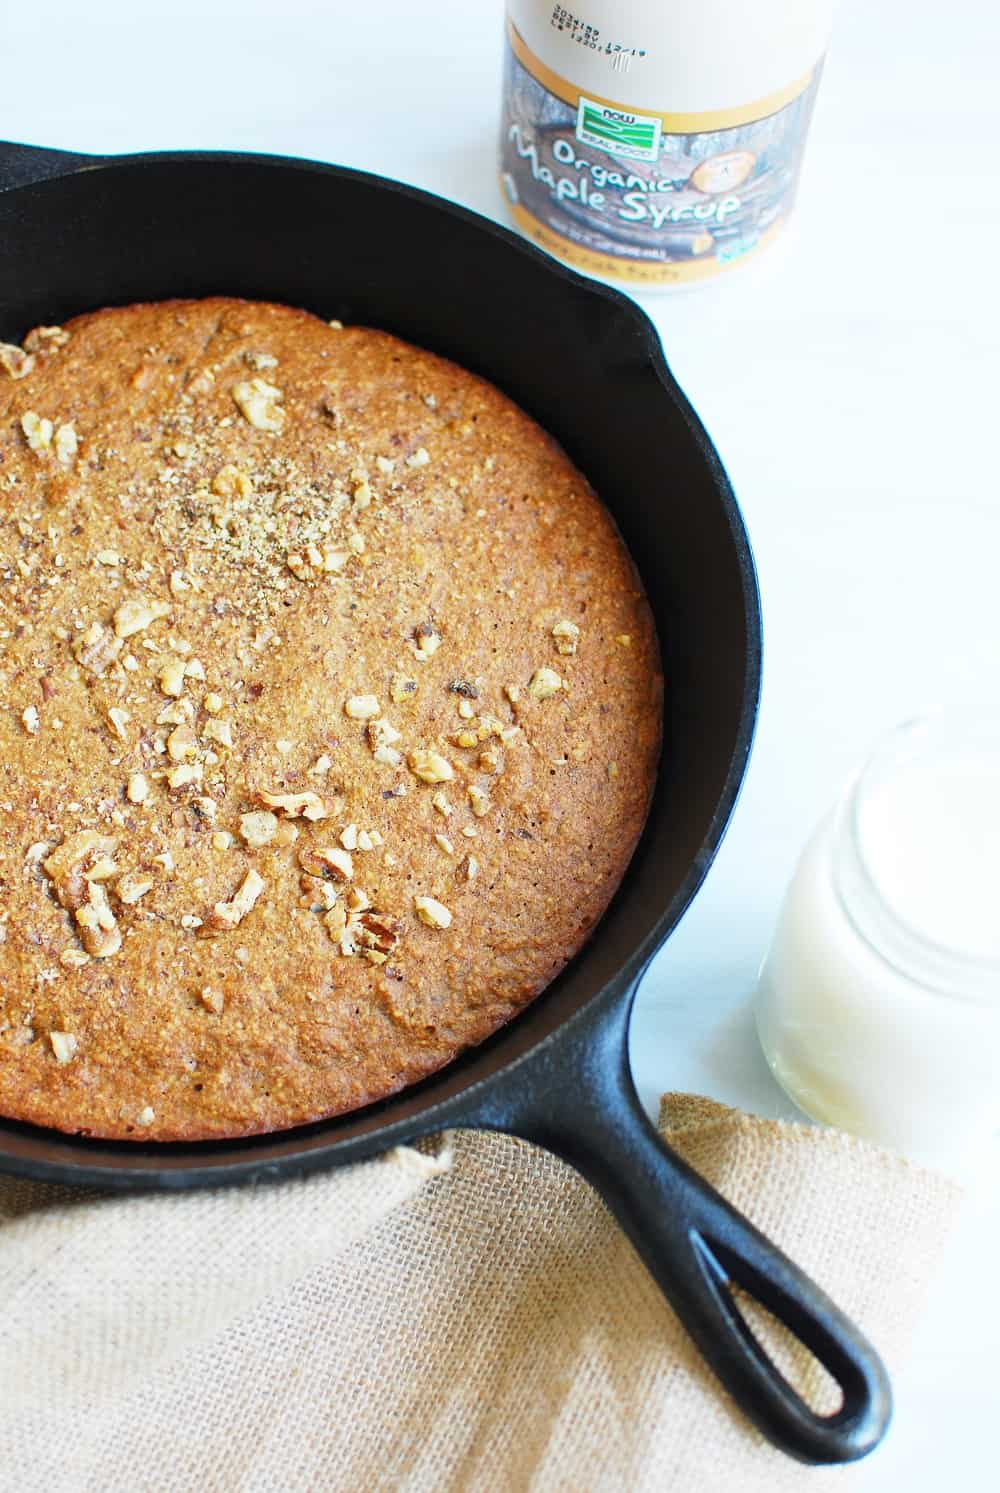 Gluten Free dairy free banana bread made in a cast iron skillet